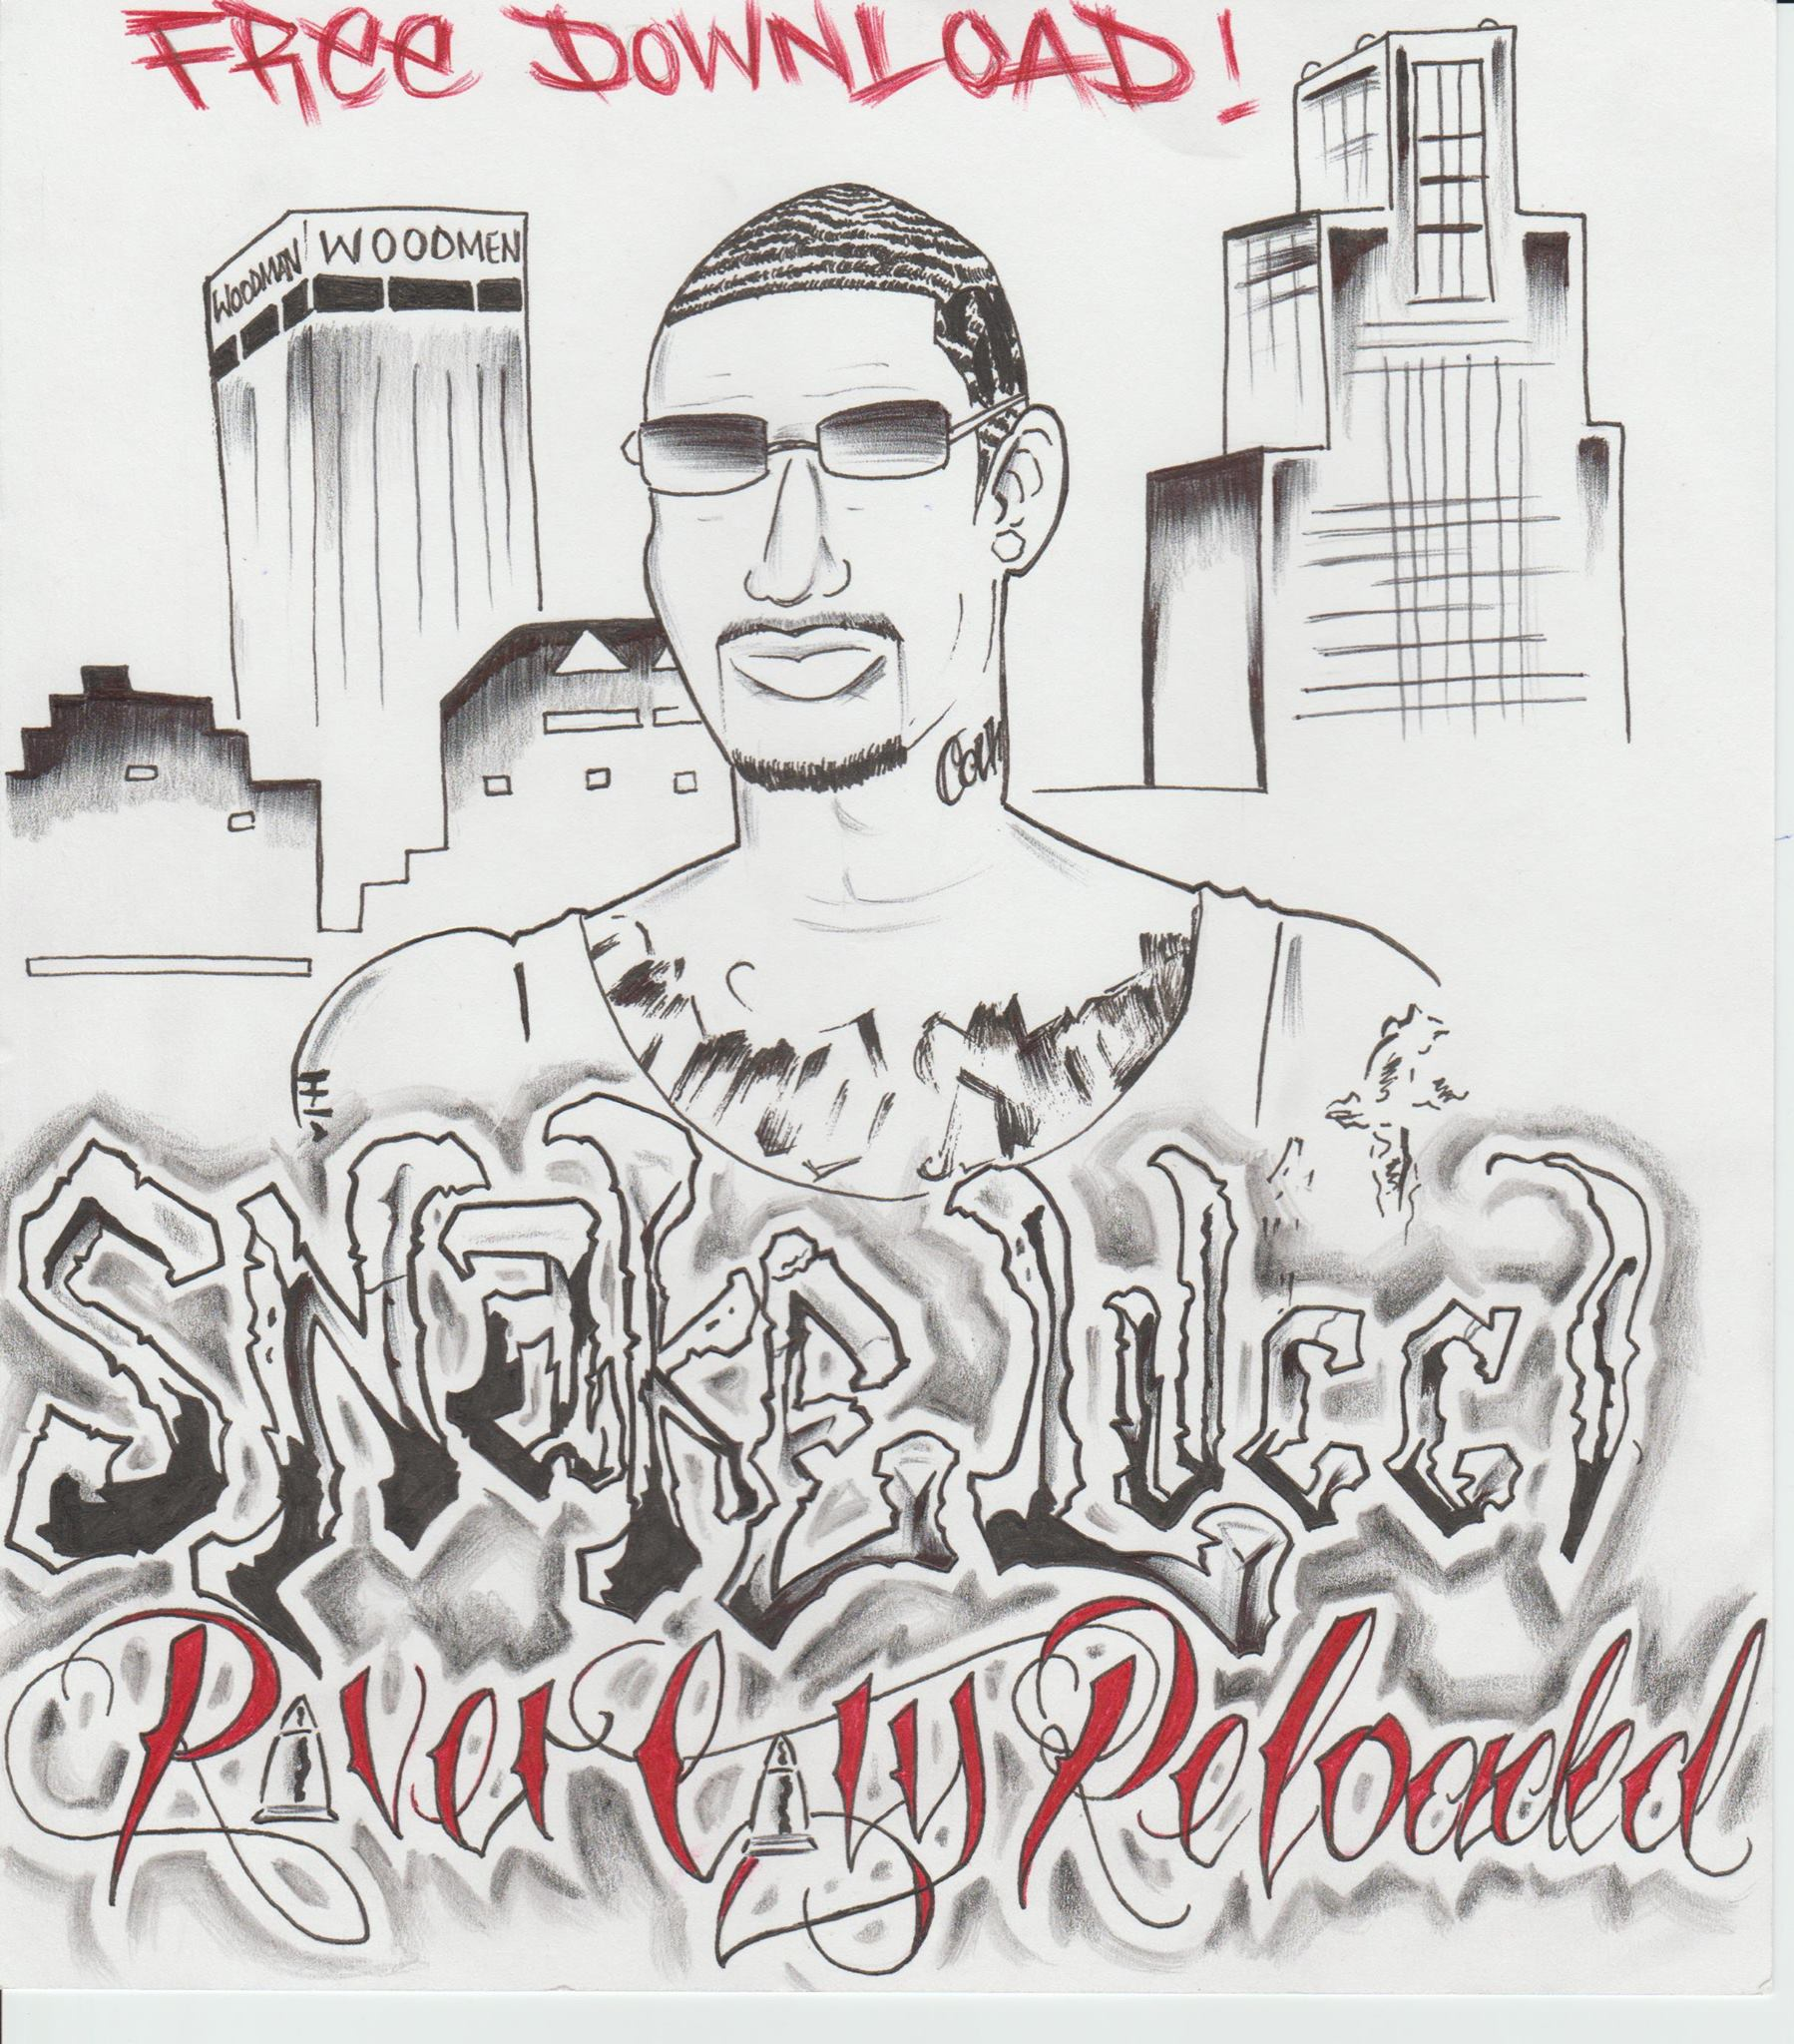 Snake Lucci - River City Reloaded (Album)